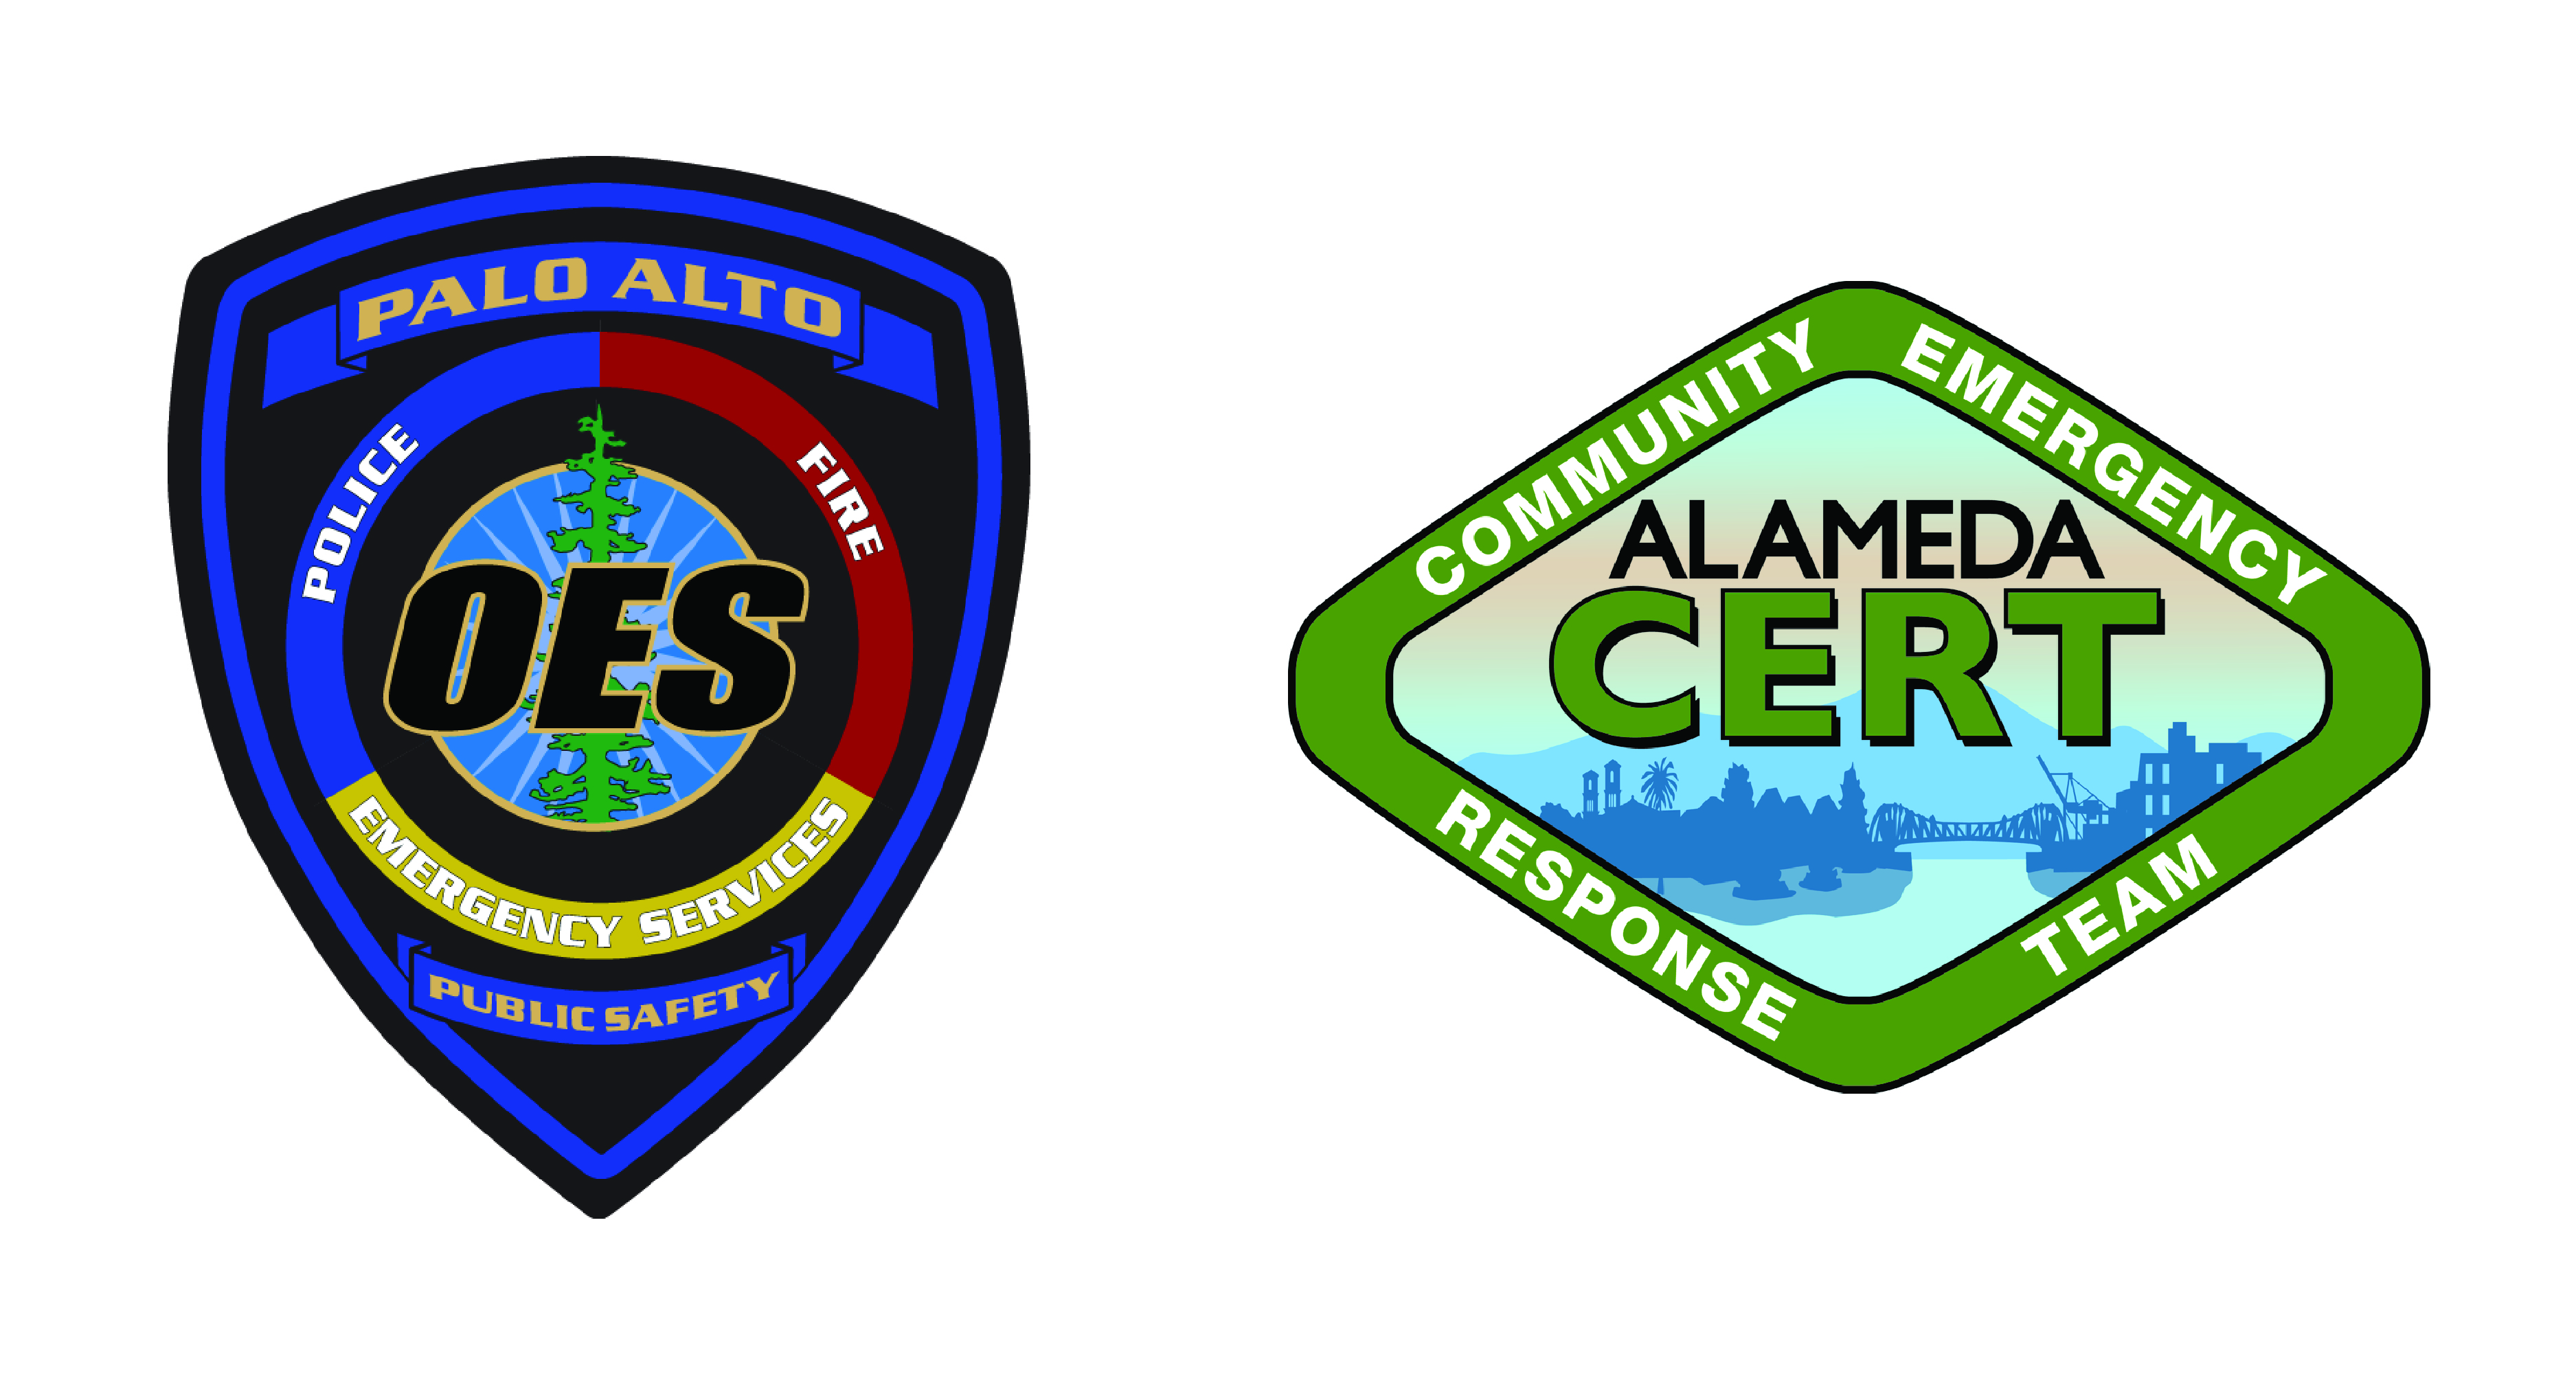 Best Practices in CERT with Alameda and Palo Alto, CA